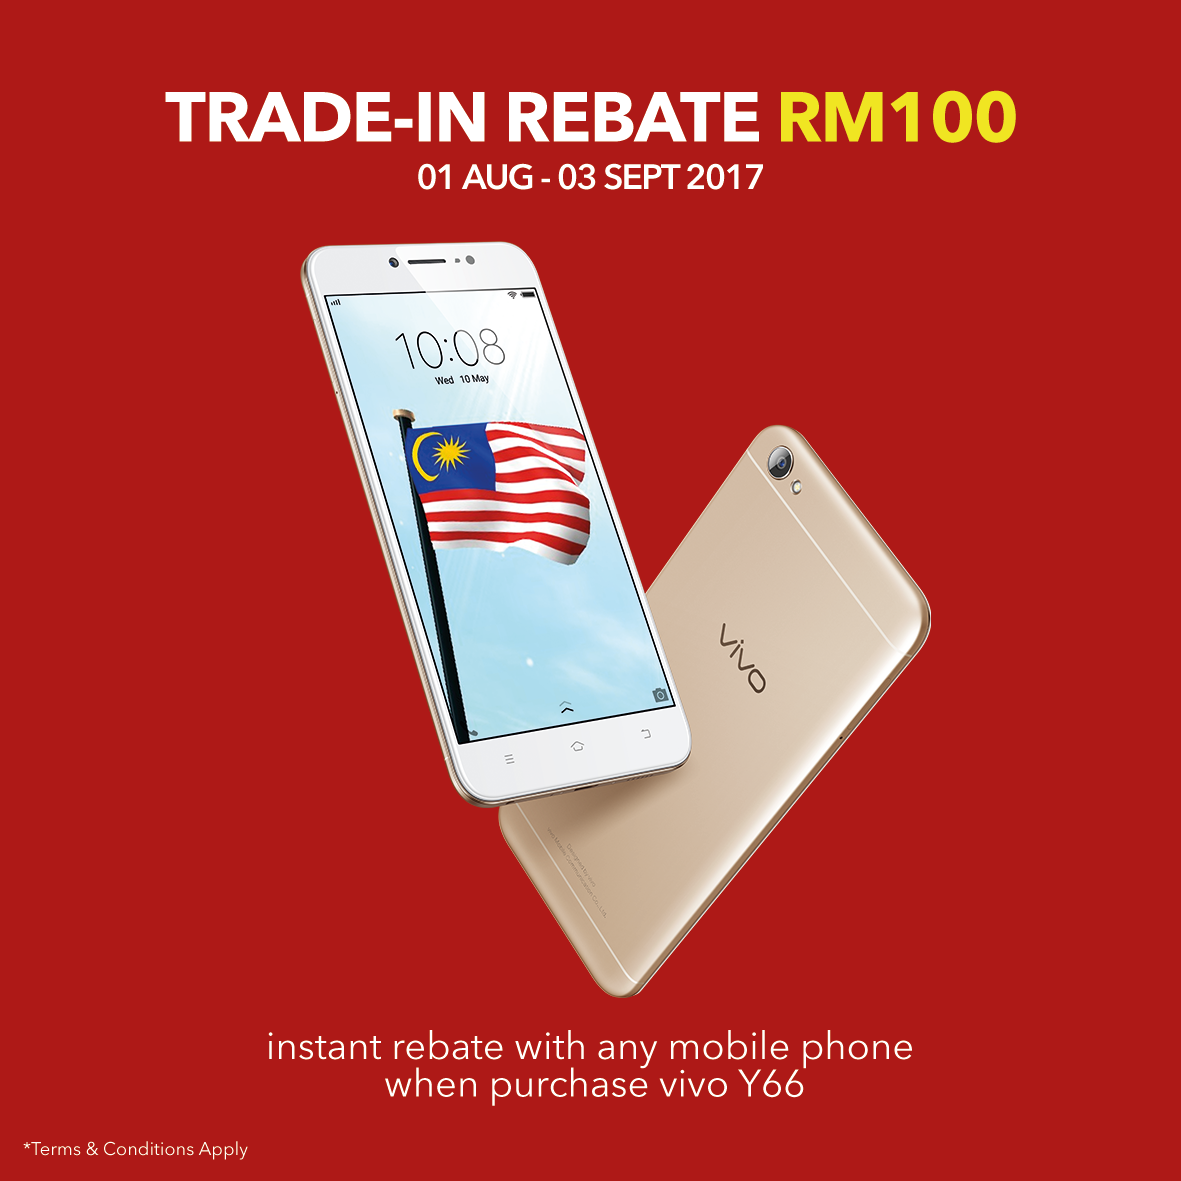 Win cash prizes up to RM5000 in vivo Merdeka Lucky Draw contest